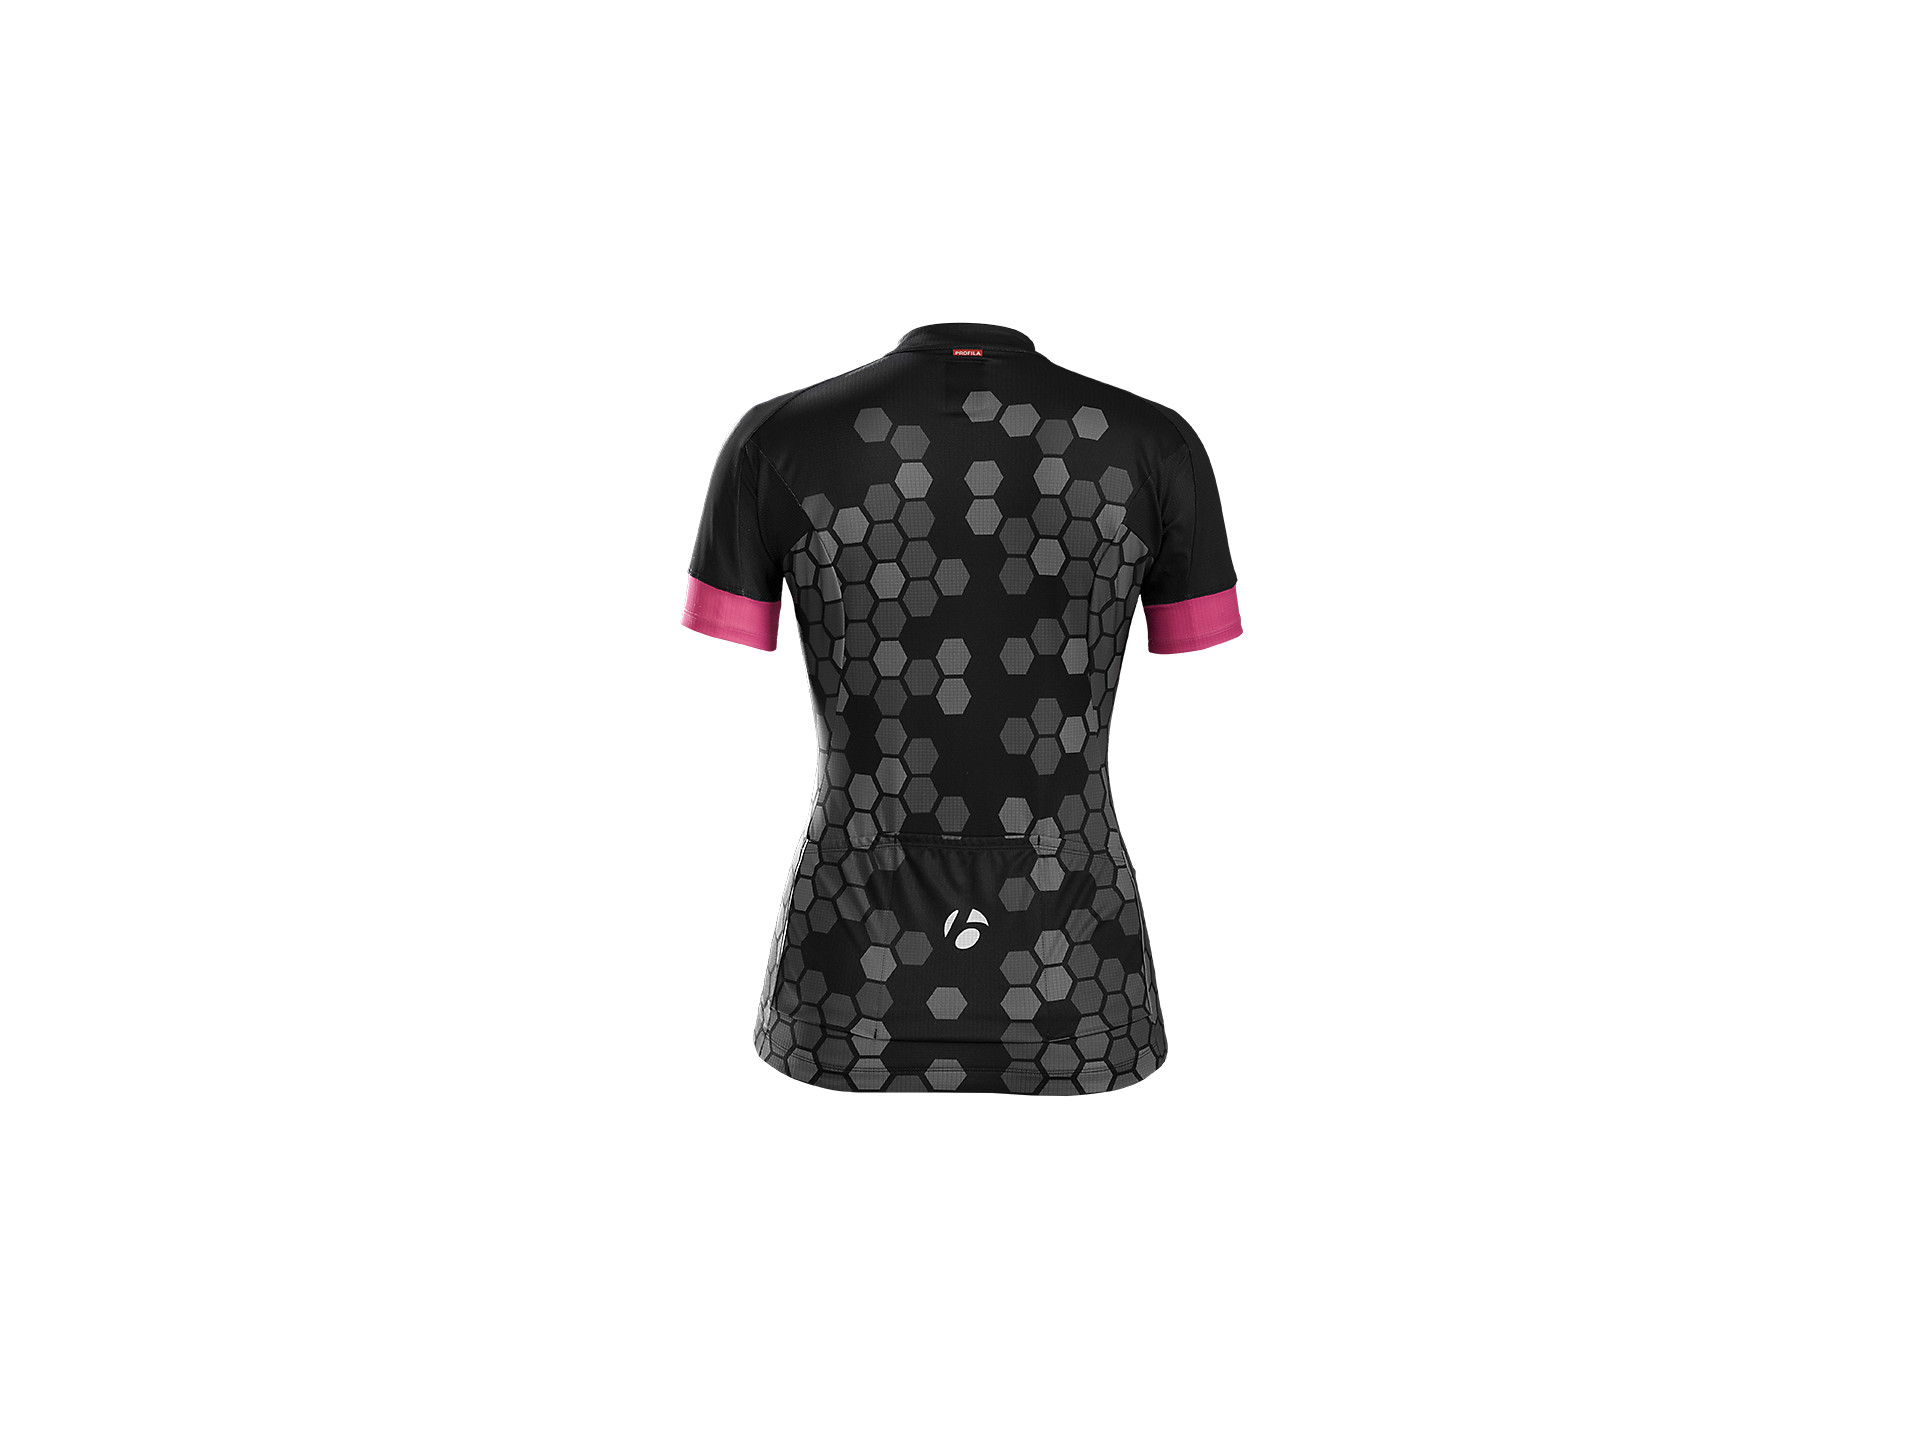 Bontrager Anara Women s Cycling Jersey. Overview  Features  Reviews  FAQs   Buy. Prev Next f47a0642a